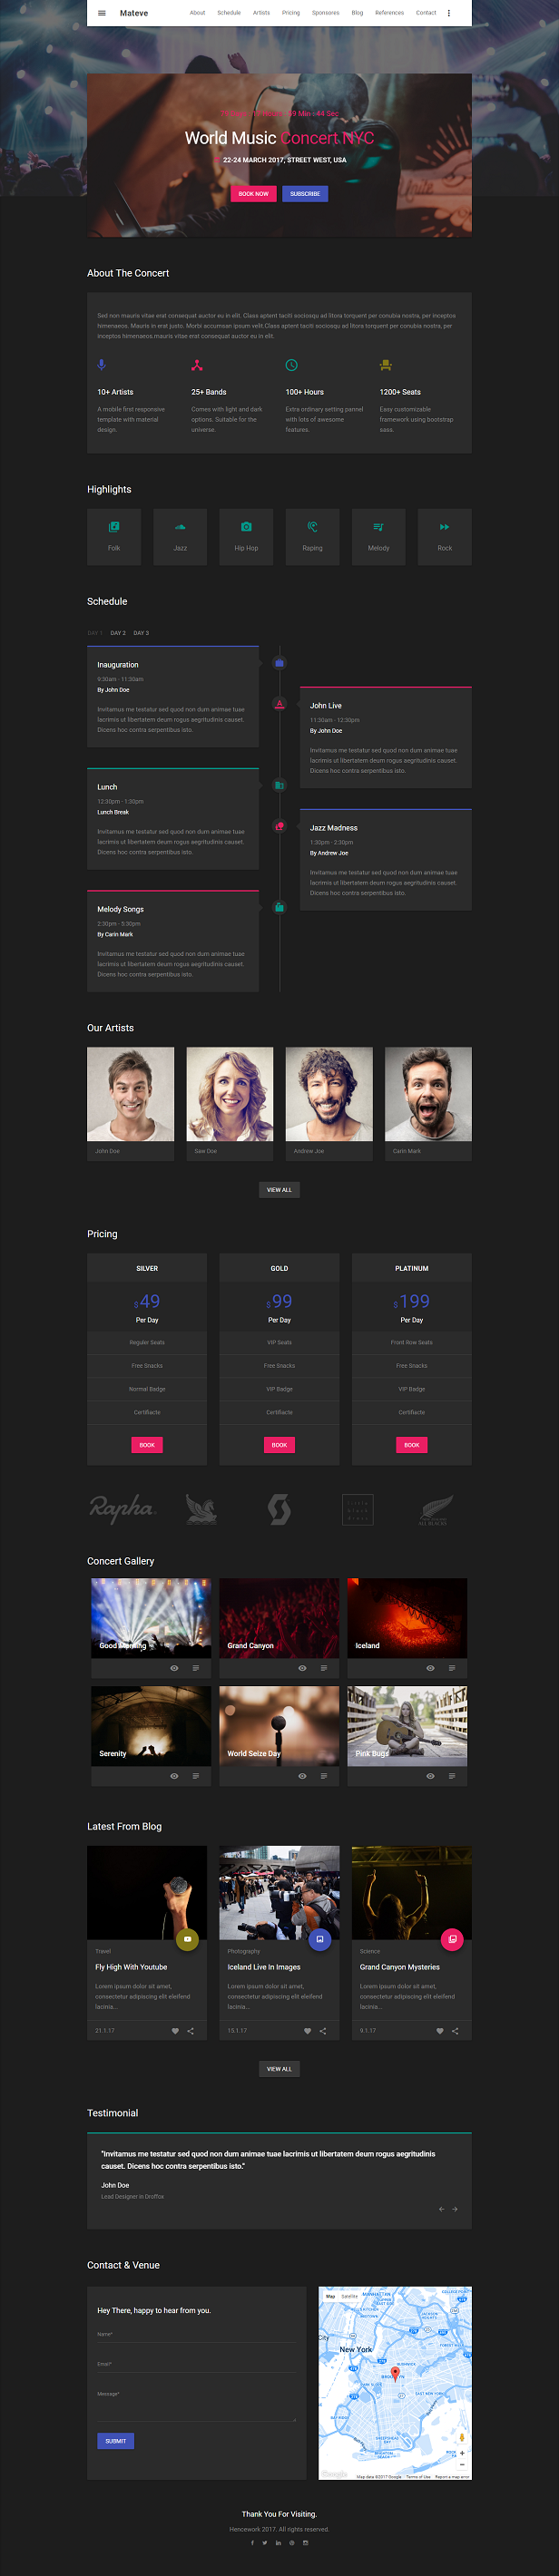 Mateve - Material Design Event / Conference / Concert HTML Template - 1